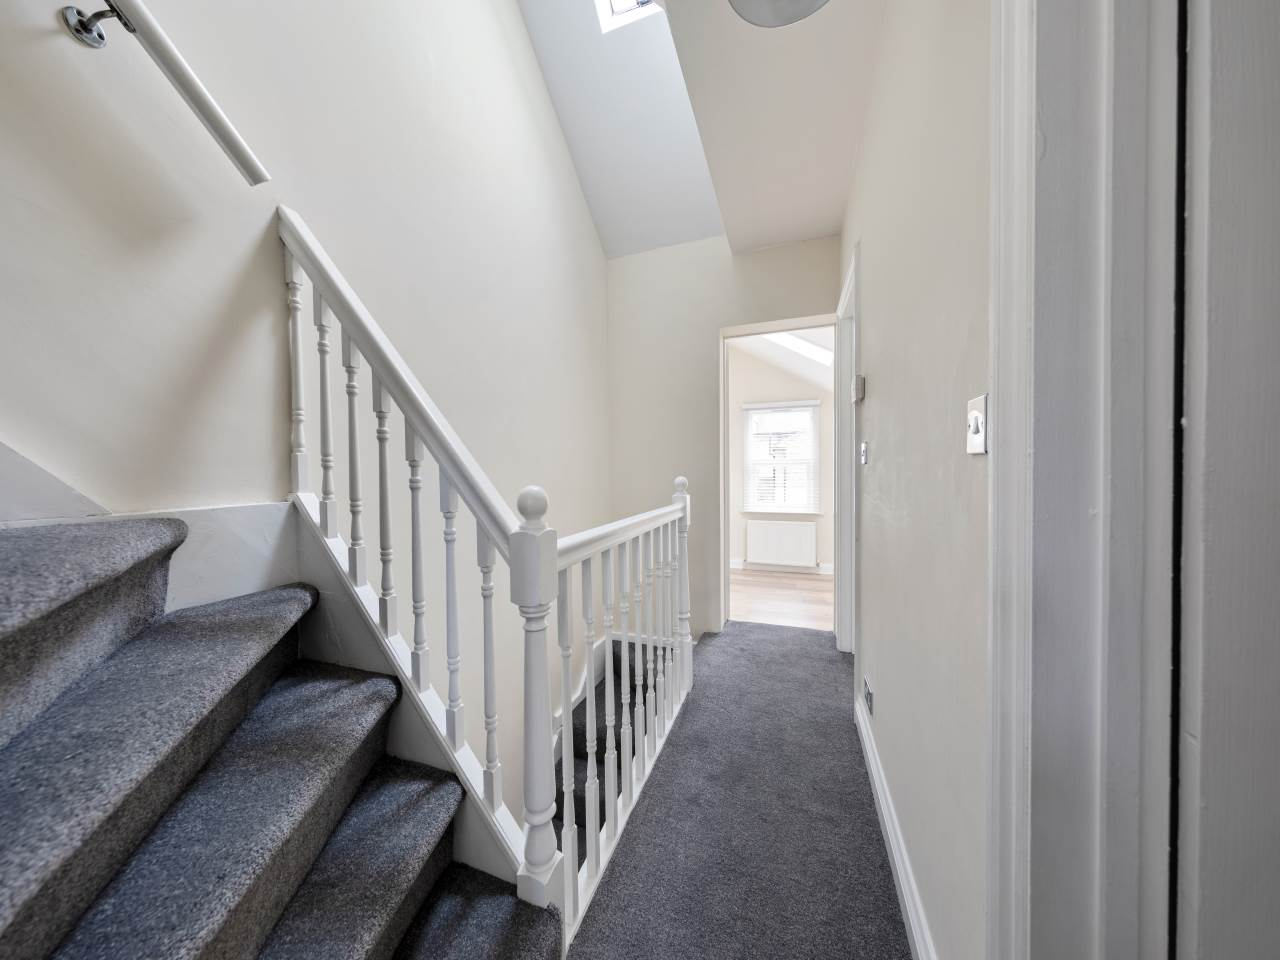 3 bed house for sale in Exning Road , Canning Town  12